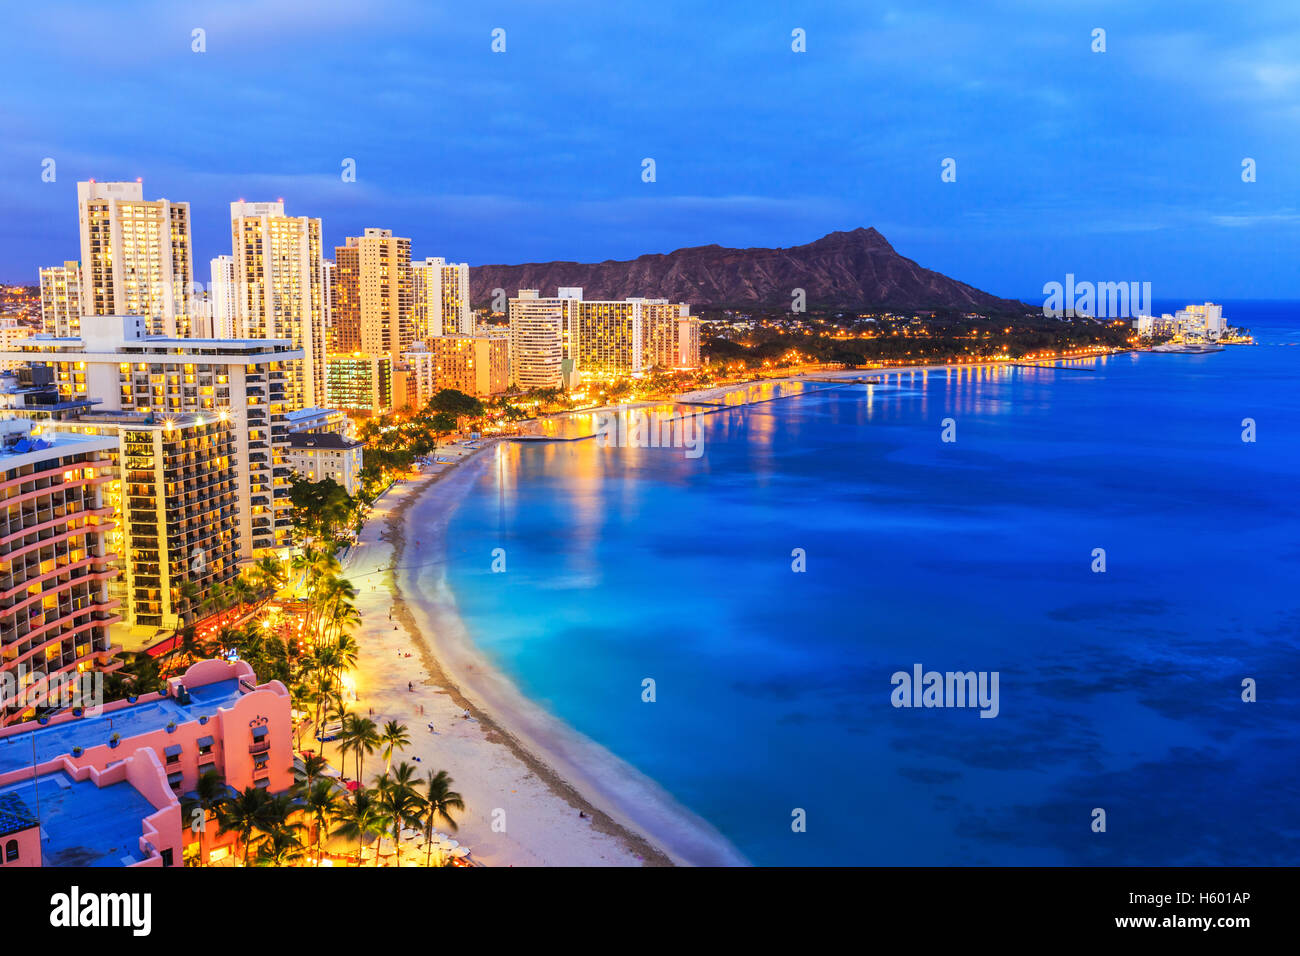 Honolulu, Hawaii. Skyline on the Waikiki beach. - Stock Image